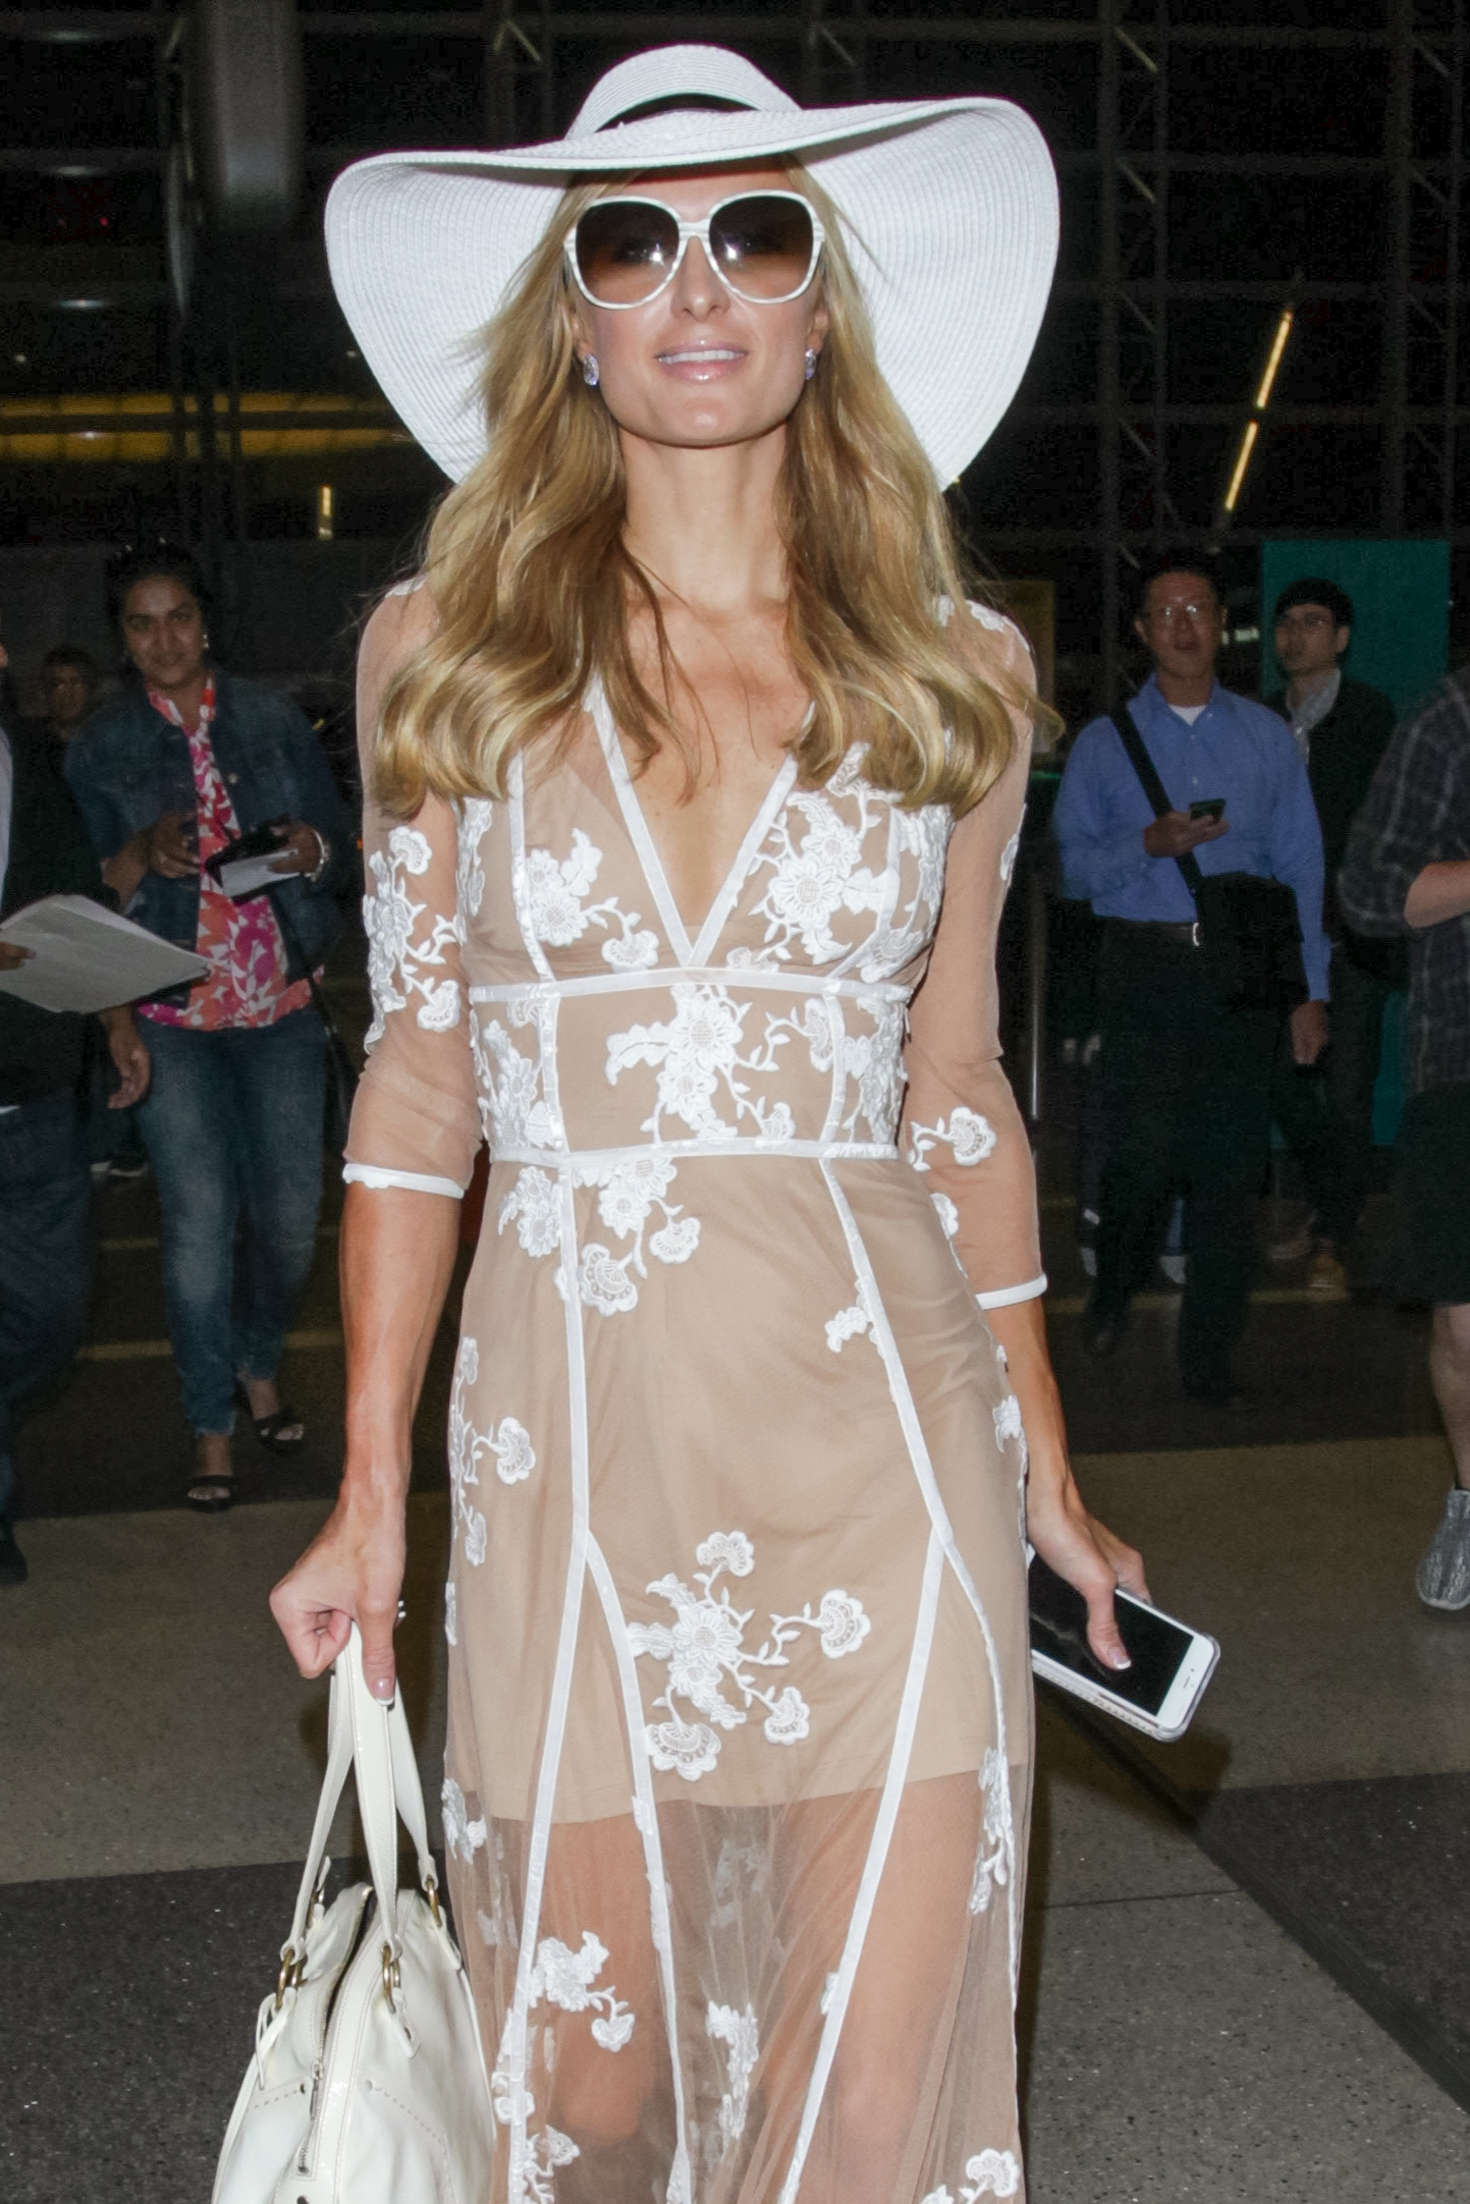 Paris Hilton in a sheer dress at Airport in Los Angeles